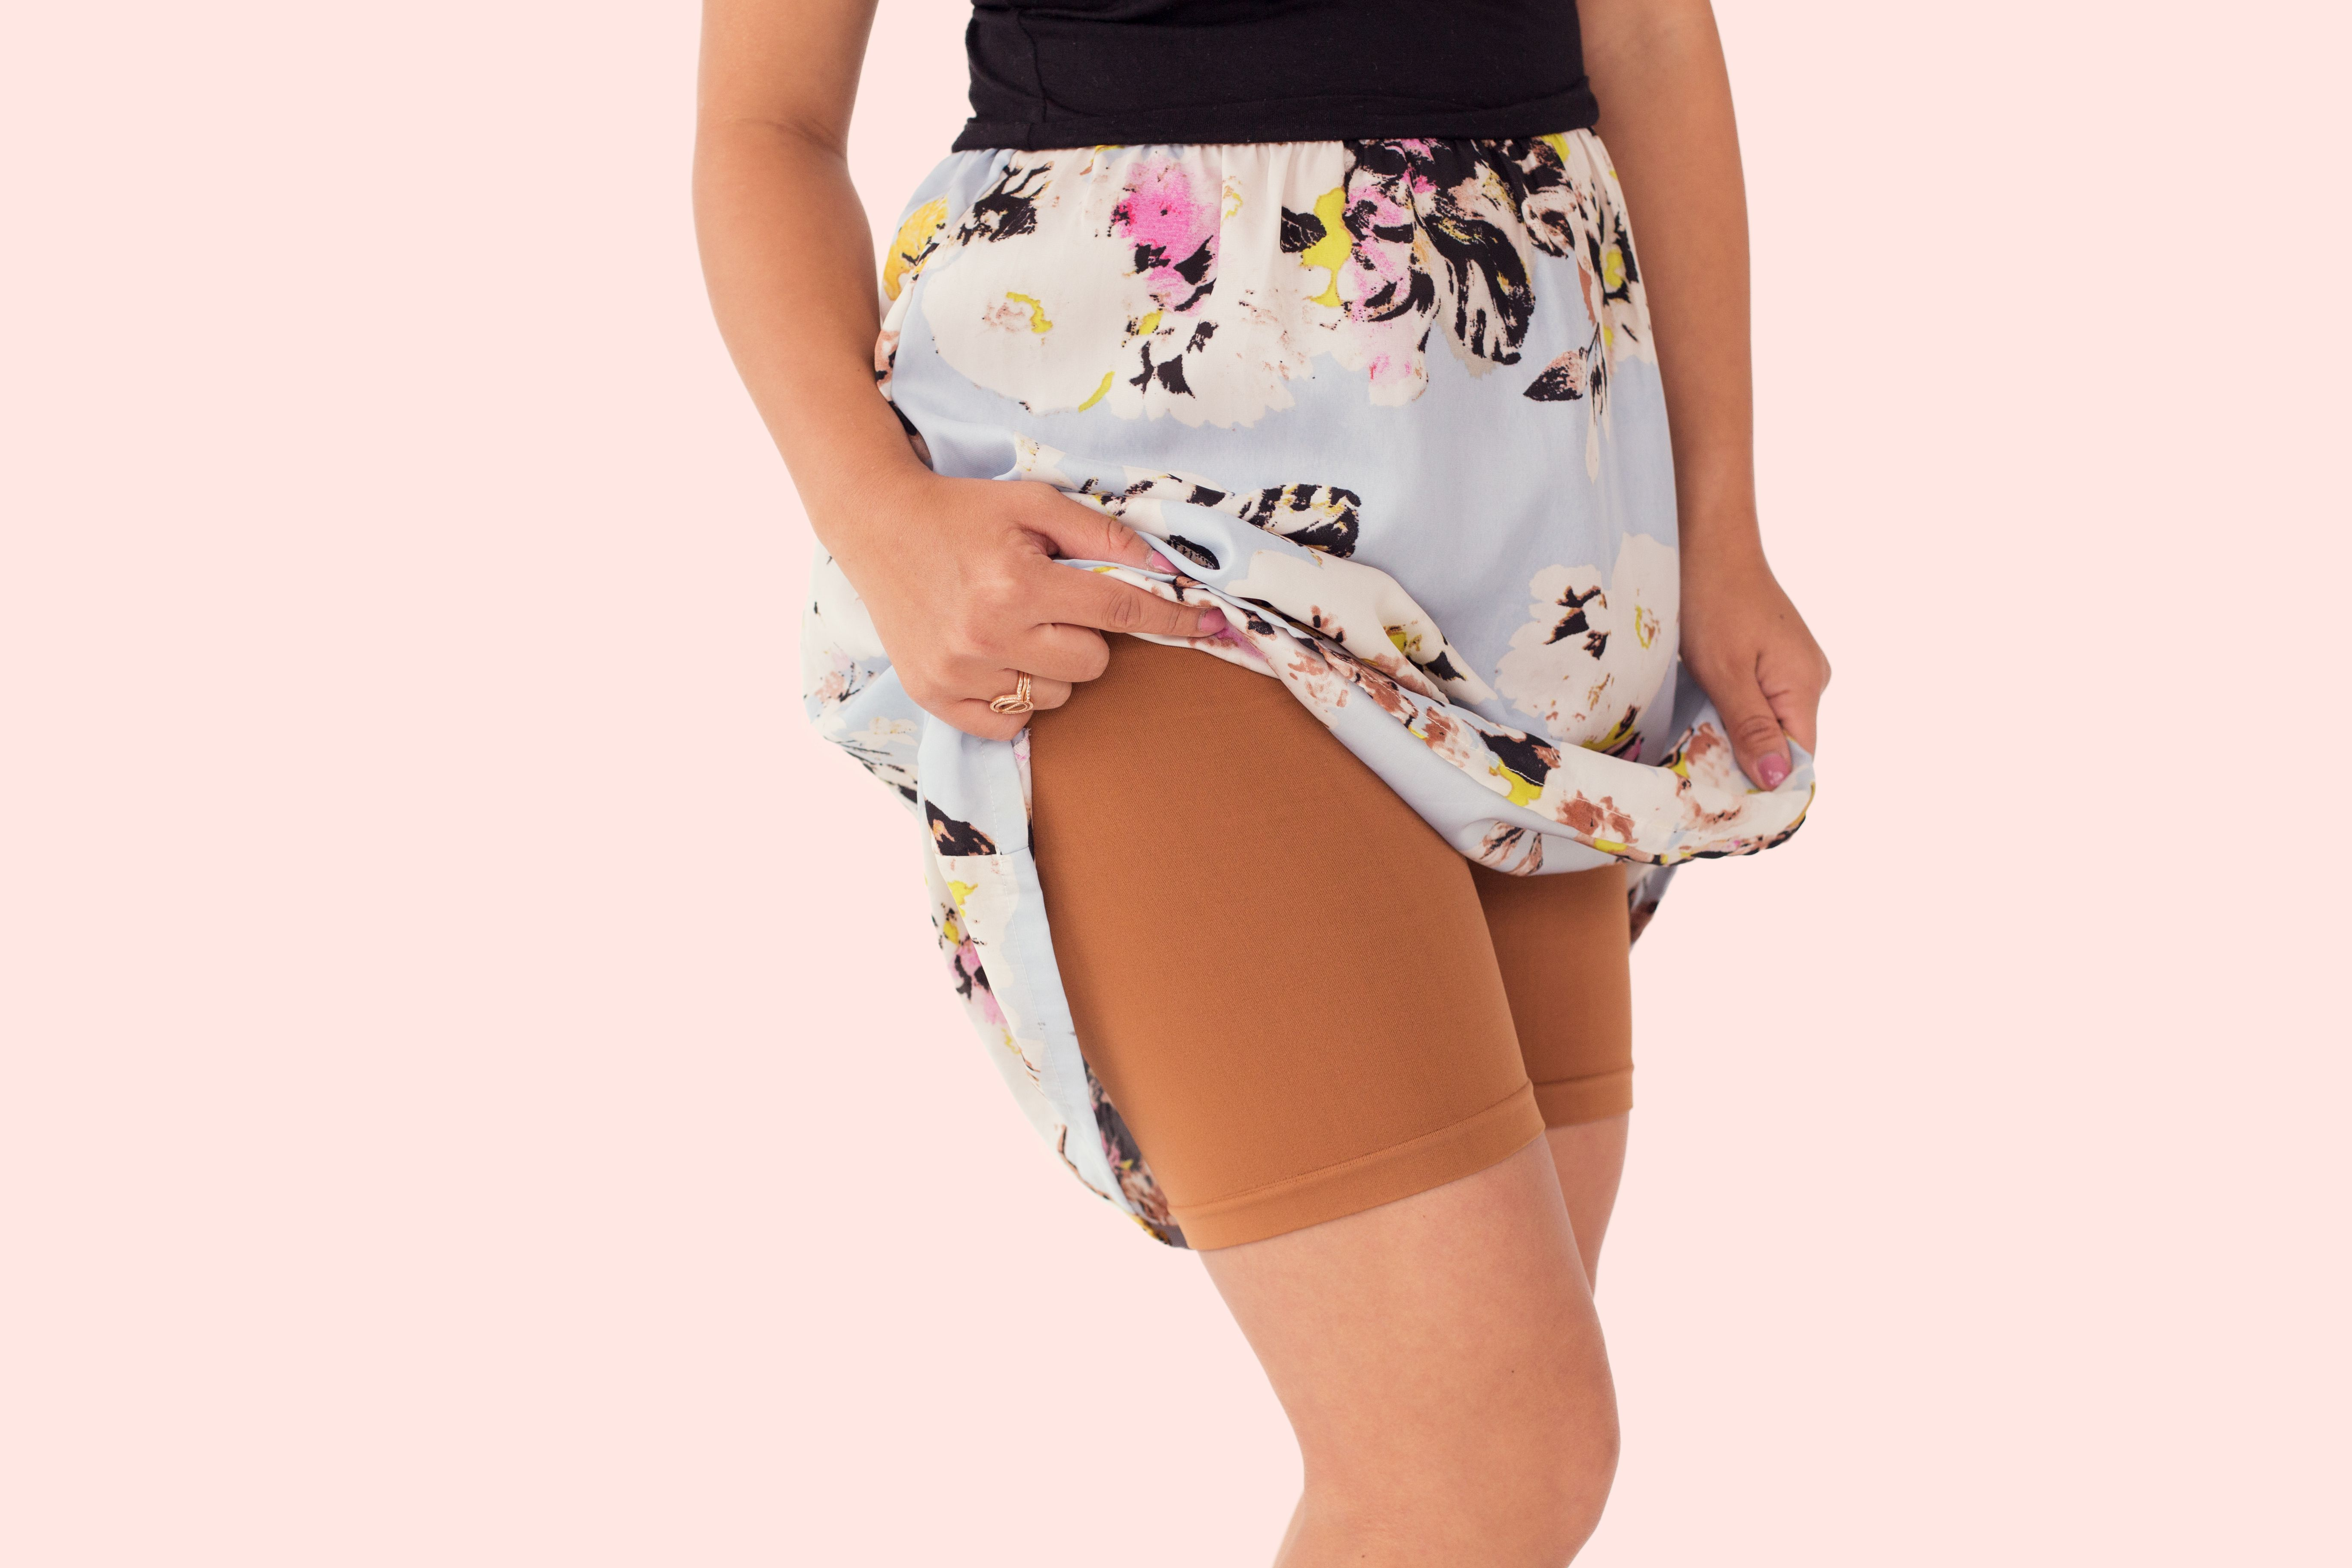 a74c4e4dfdf Shorts to Wear Under Dresses and Skirts